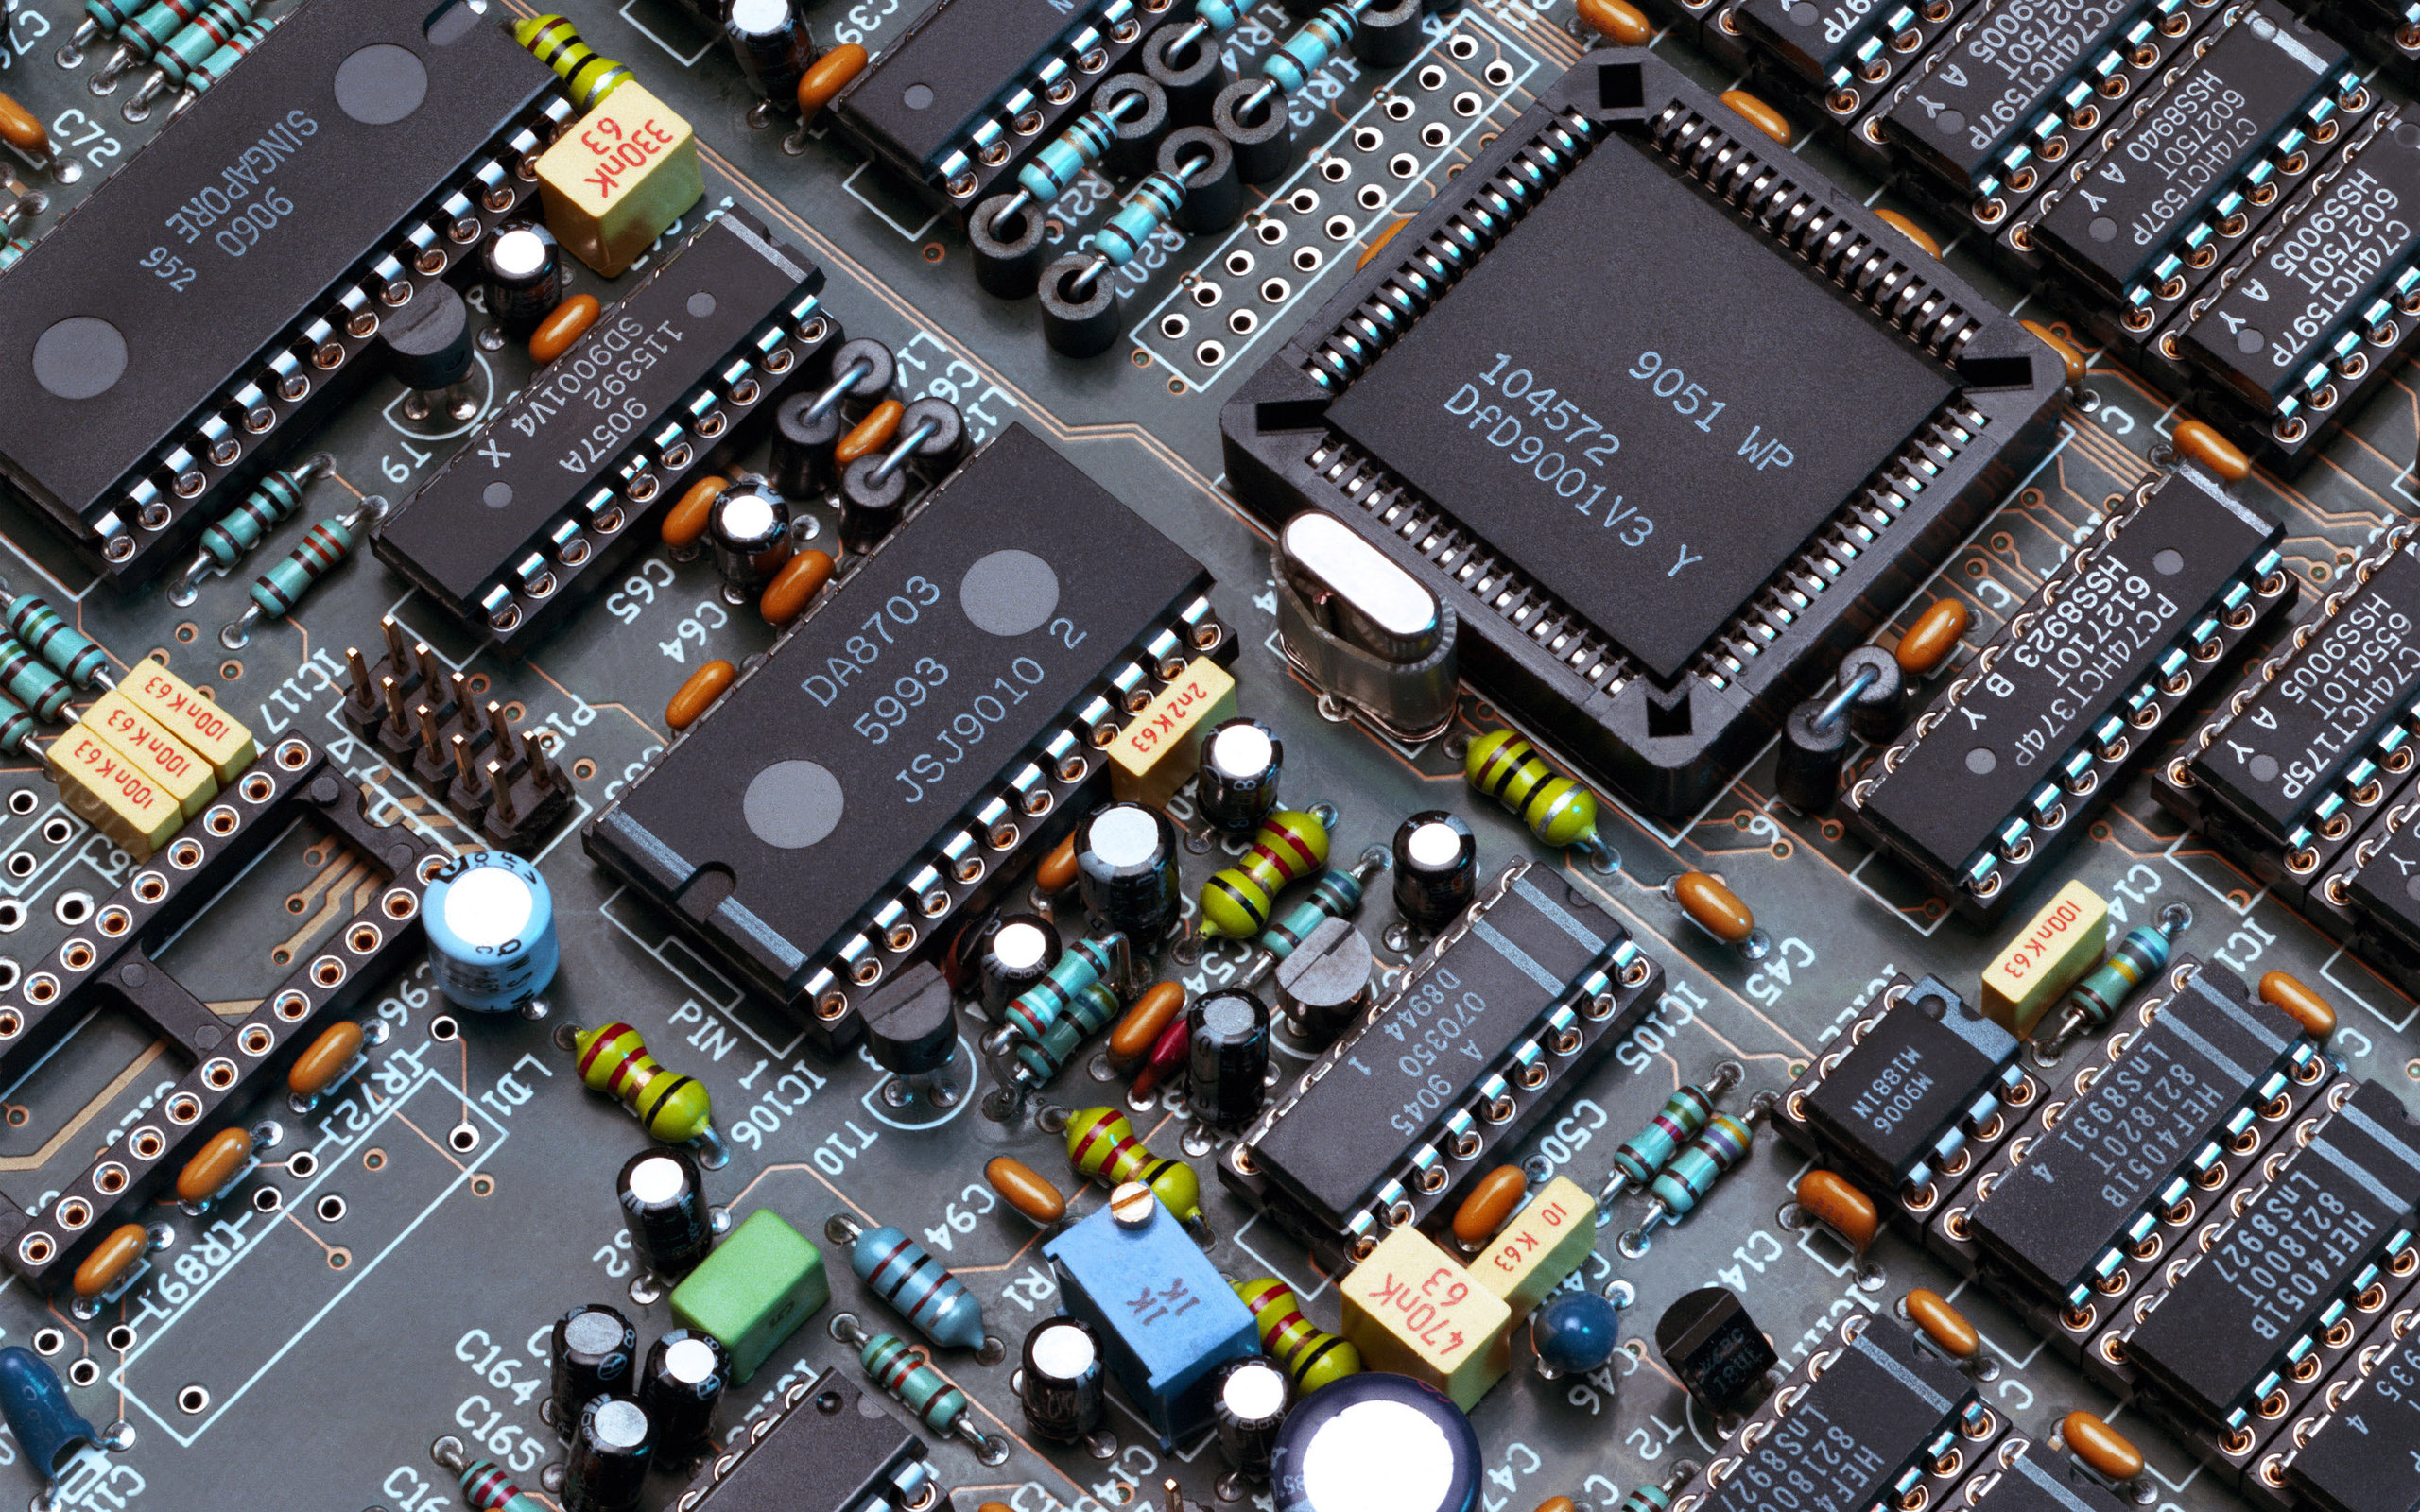 Download Board Electronics Wallpaper 2560x1600 Wallpoper 272114 2560x1600